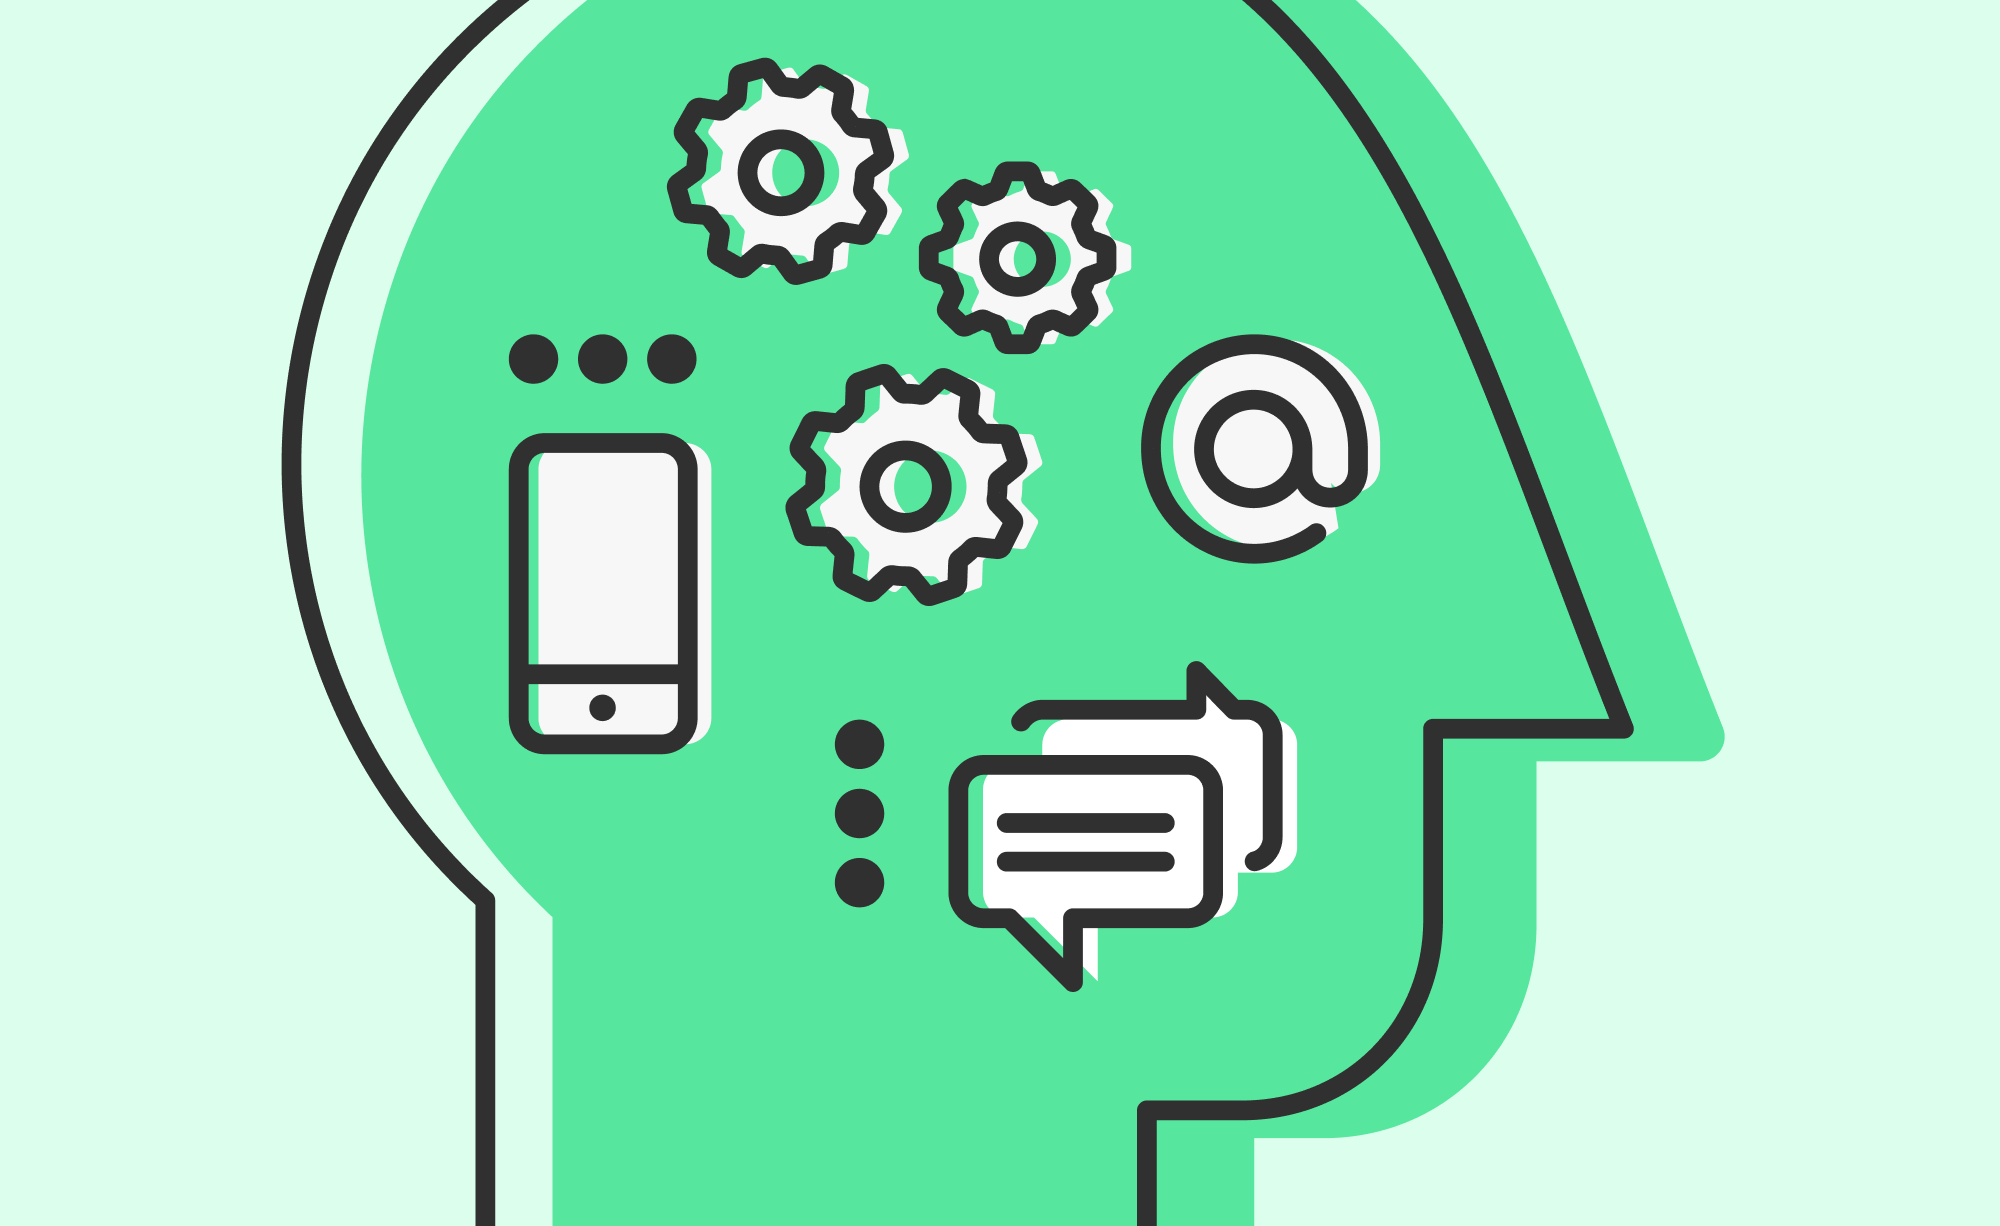 An illustration to represent the importance of technology to mental health strategies